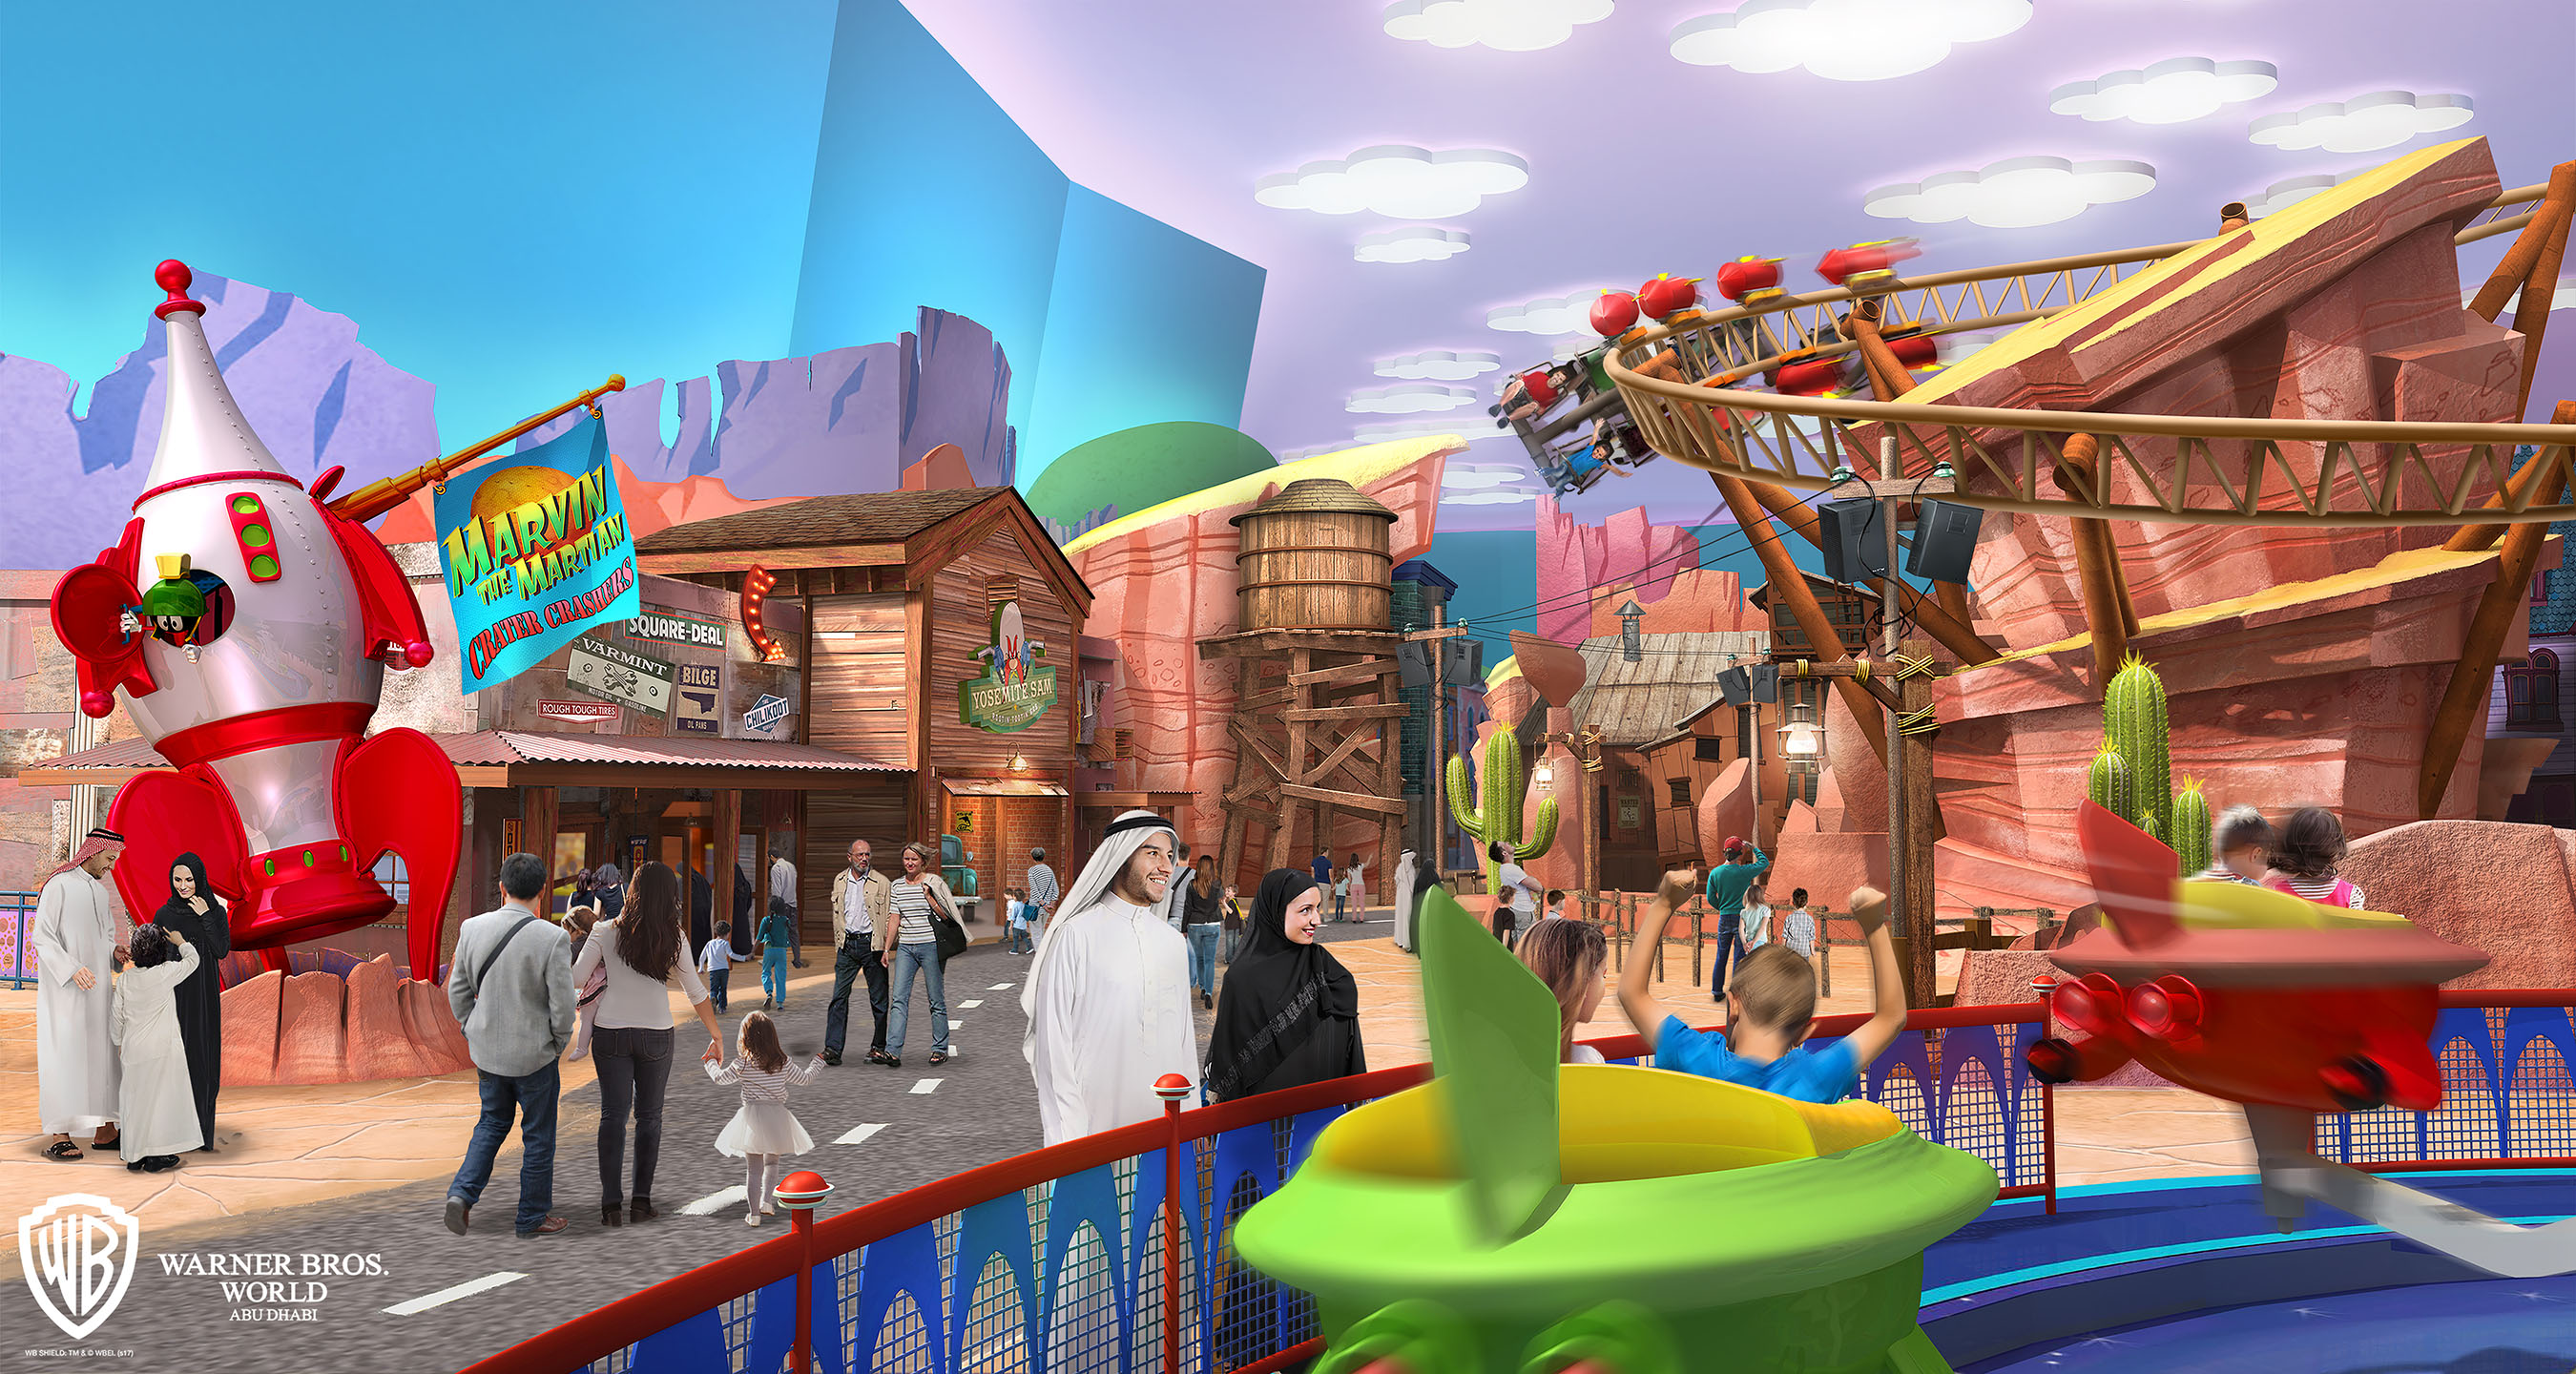 Warner Bros World Abu Dhabi, Miral Reveals First-Glimpse Of Warner Bros. World Abu Dhabi Themed ...